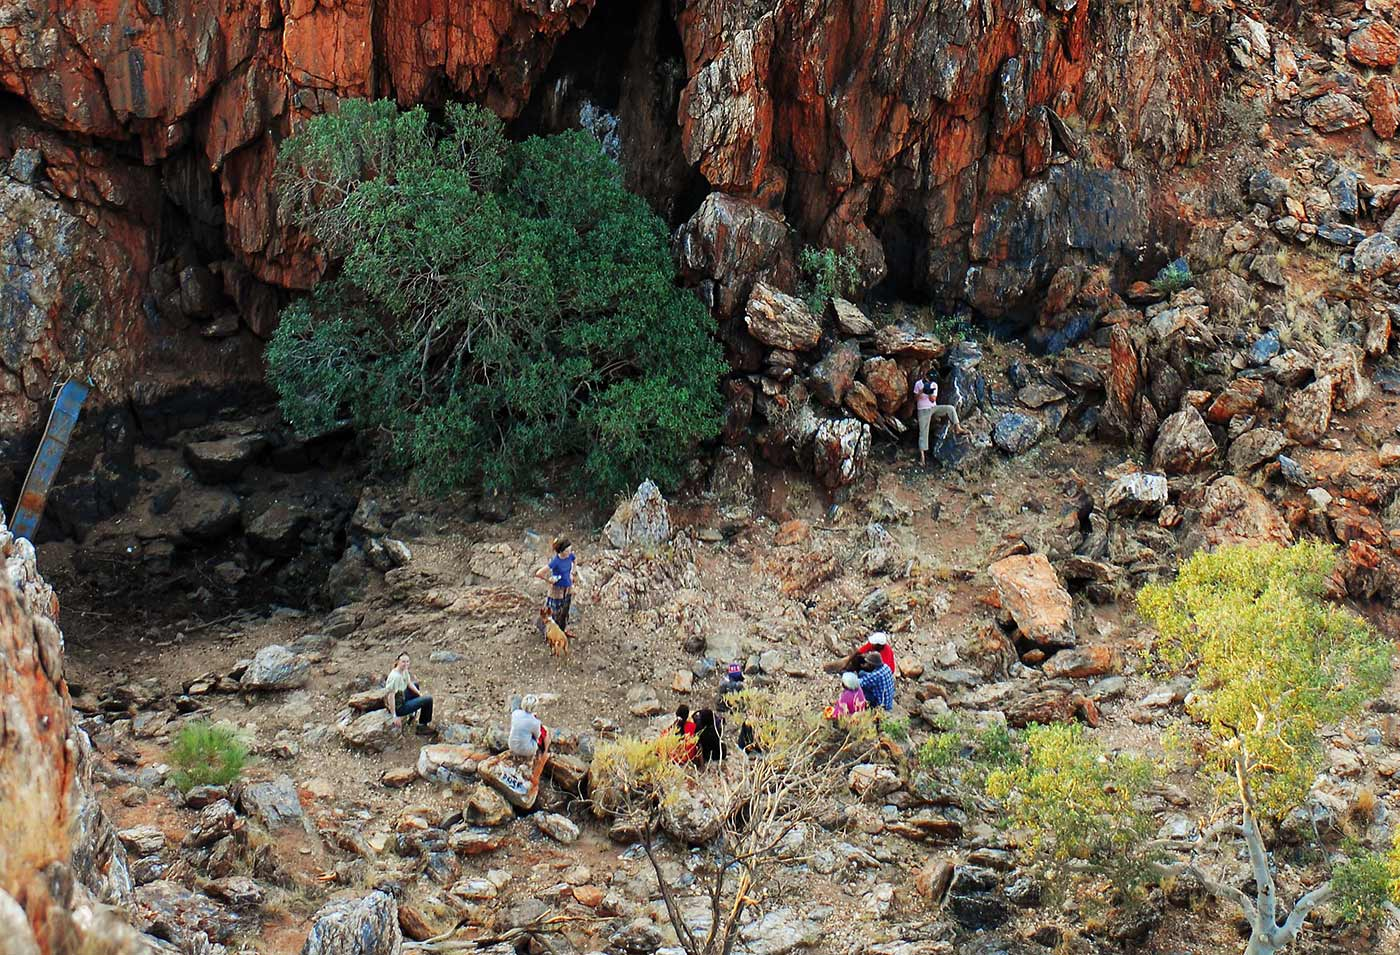 Aerial view of people relaxing amongst rocky terrain.